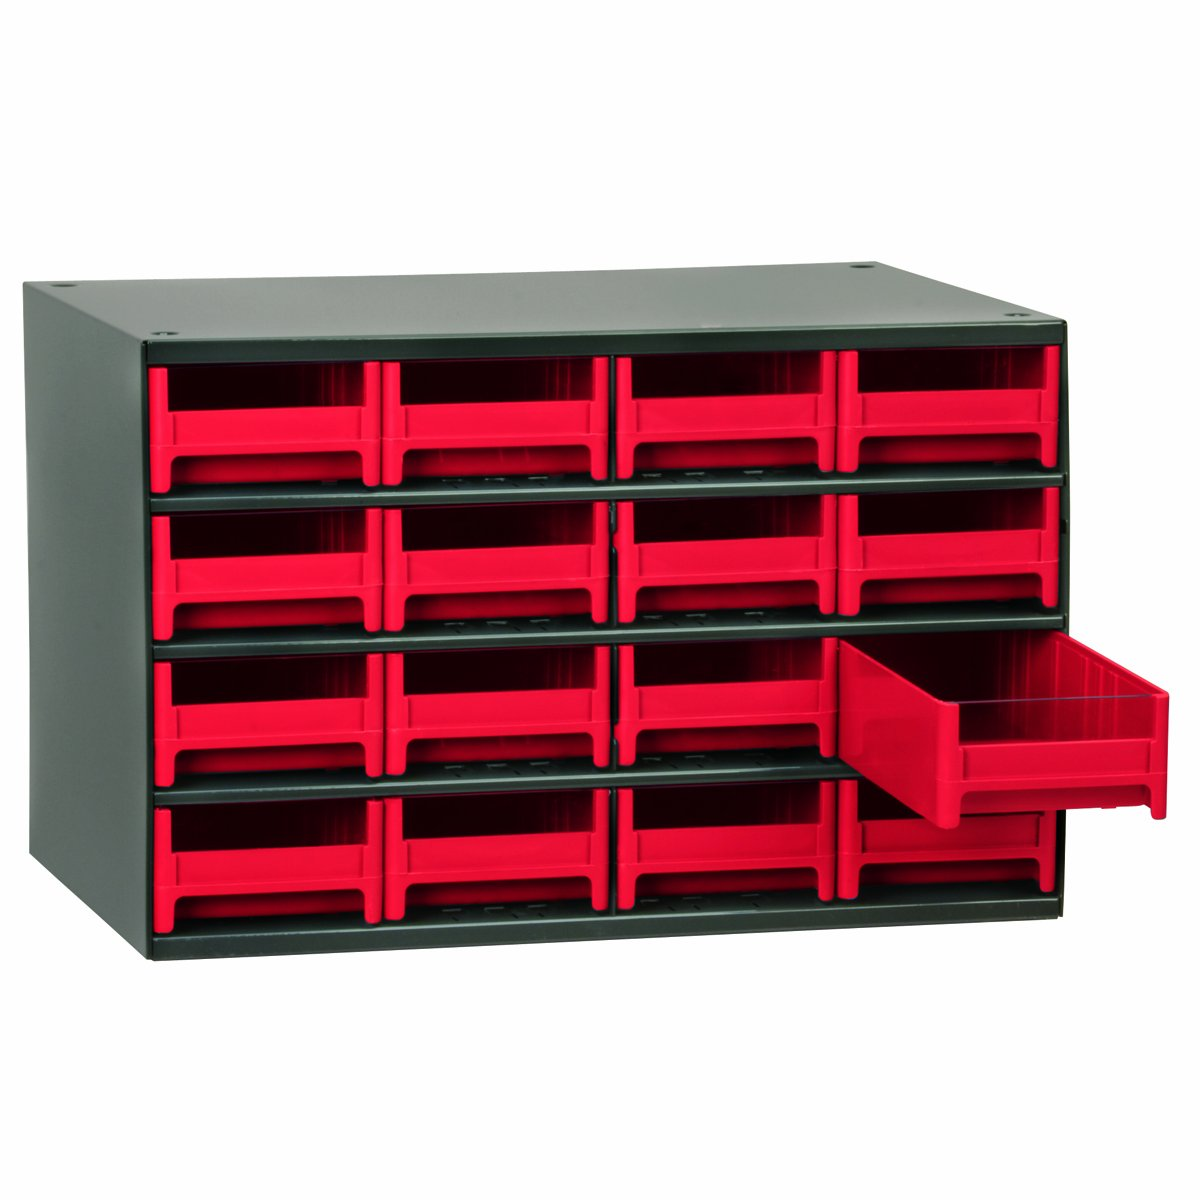 Akro-Mils 19416 17-Inch W by 11-Inch H by 11-Inch D 16 Drawer Steel Parts Storage Hardware and Craft Cabinet, Red Drawers